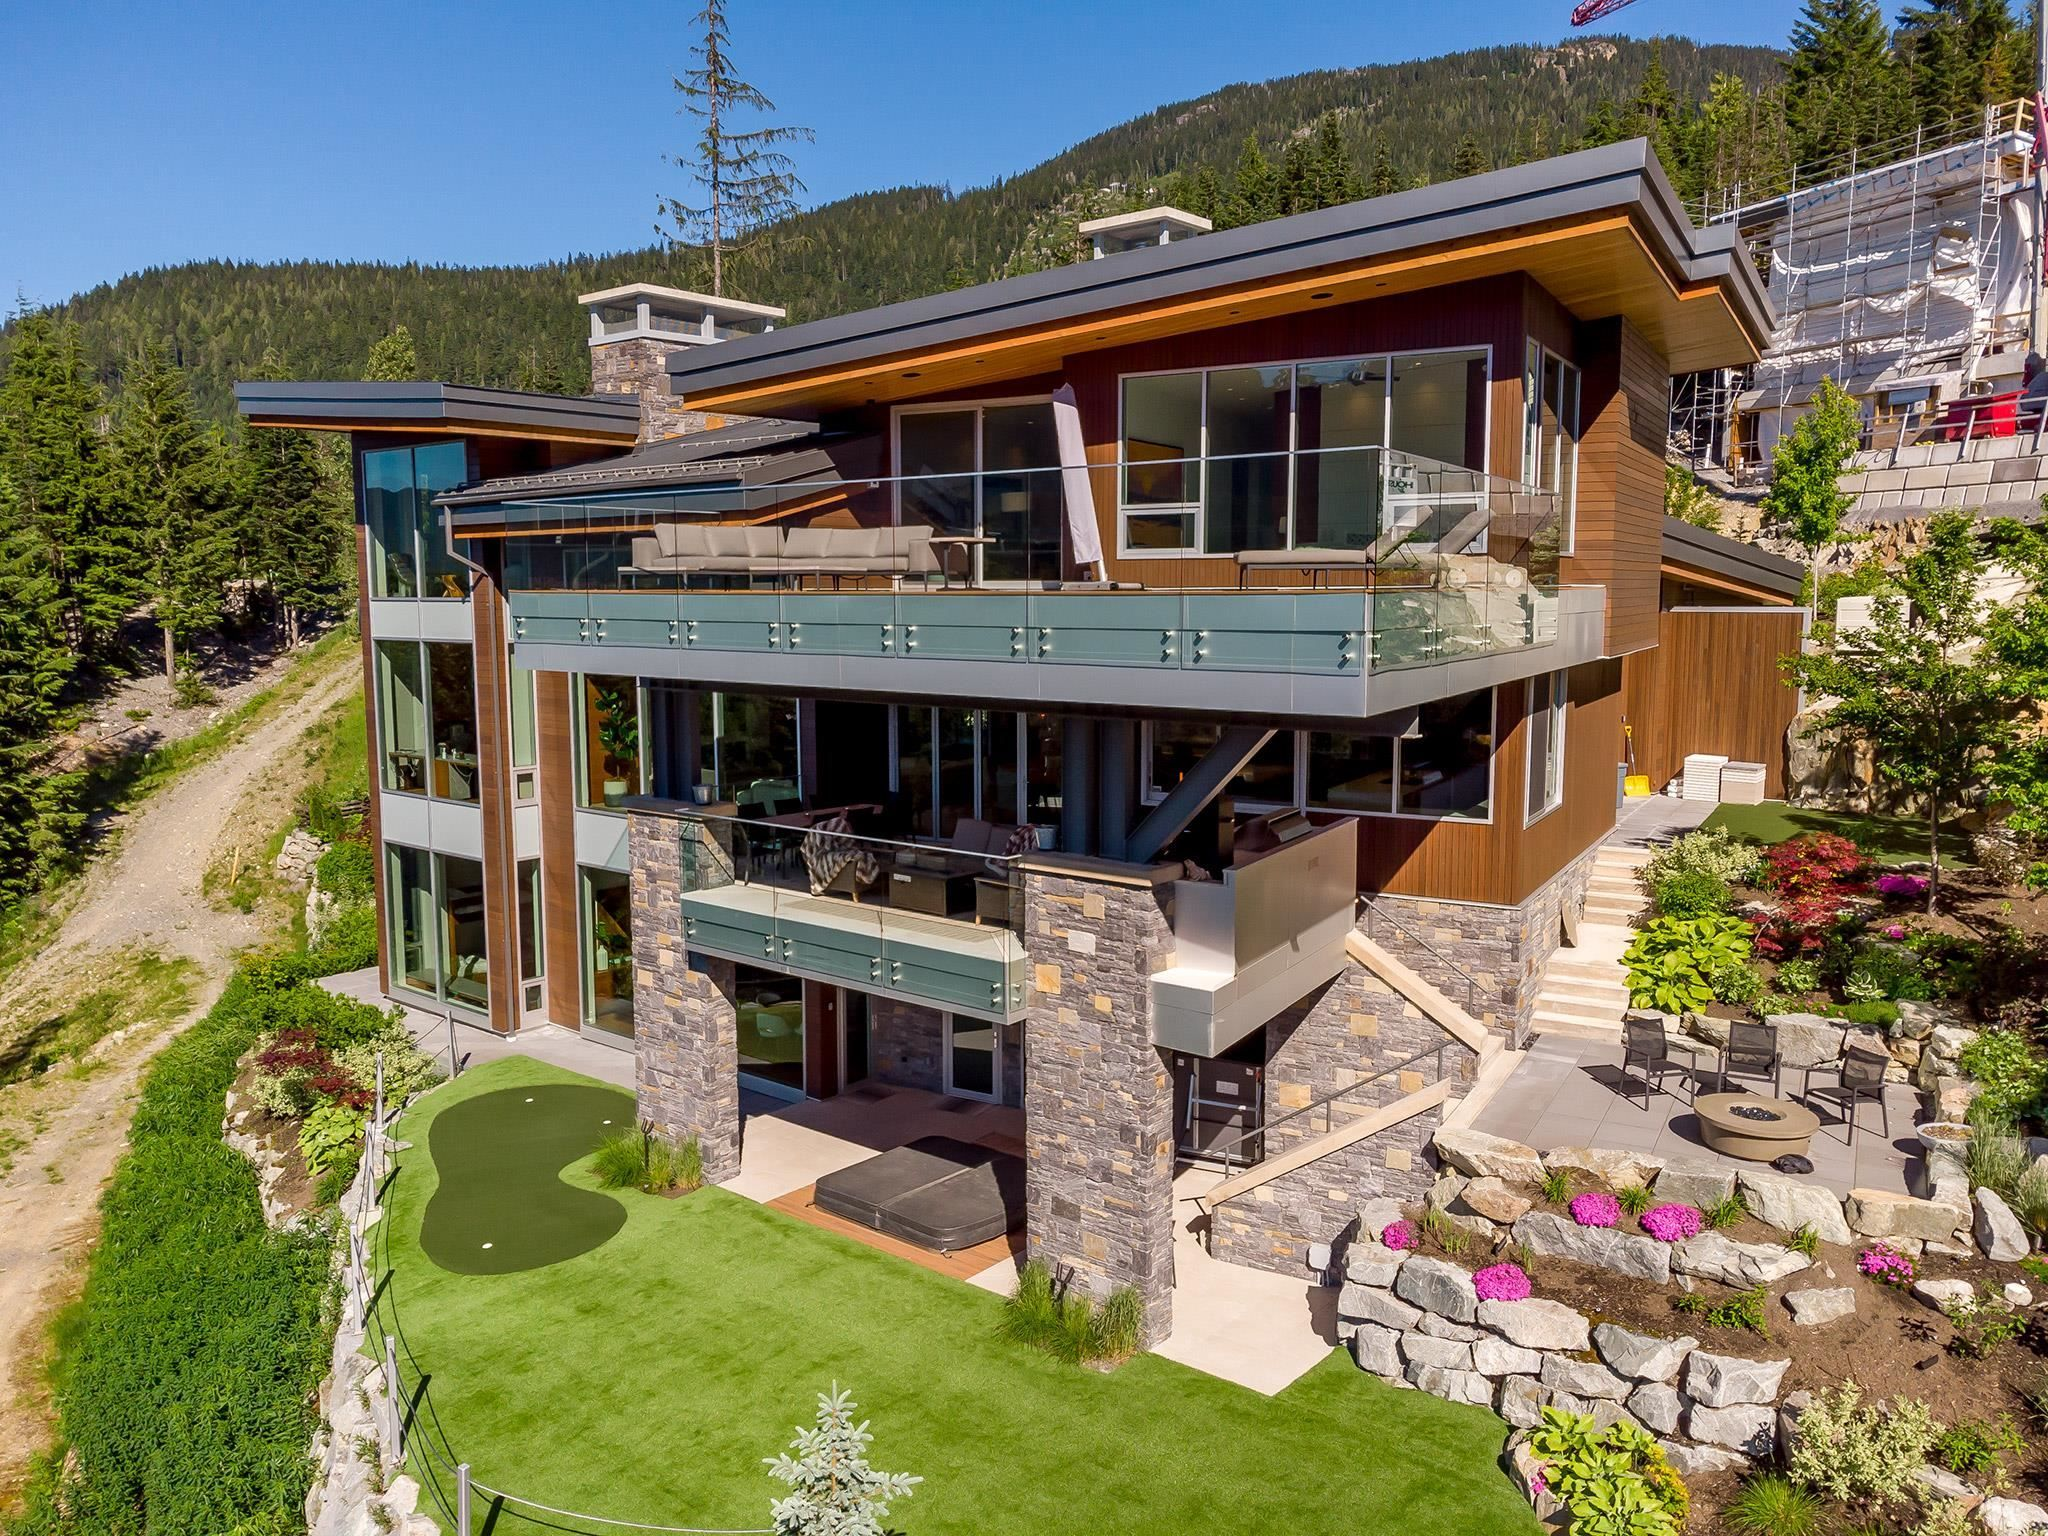 """Main Photo: 2984 TRAIL'S END Lane in Whistler: Bayshores House for sale in """"Kadenwood / Bayshores"""" : MLS®# R2619024"""